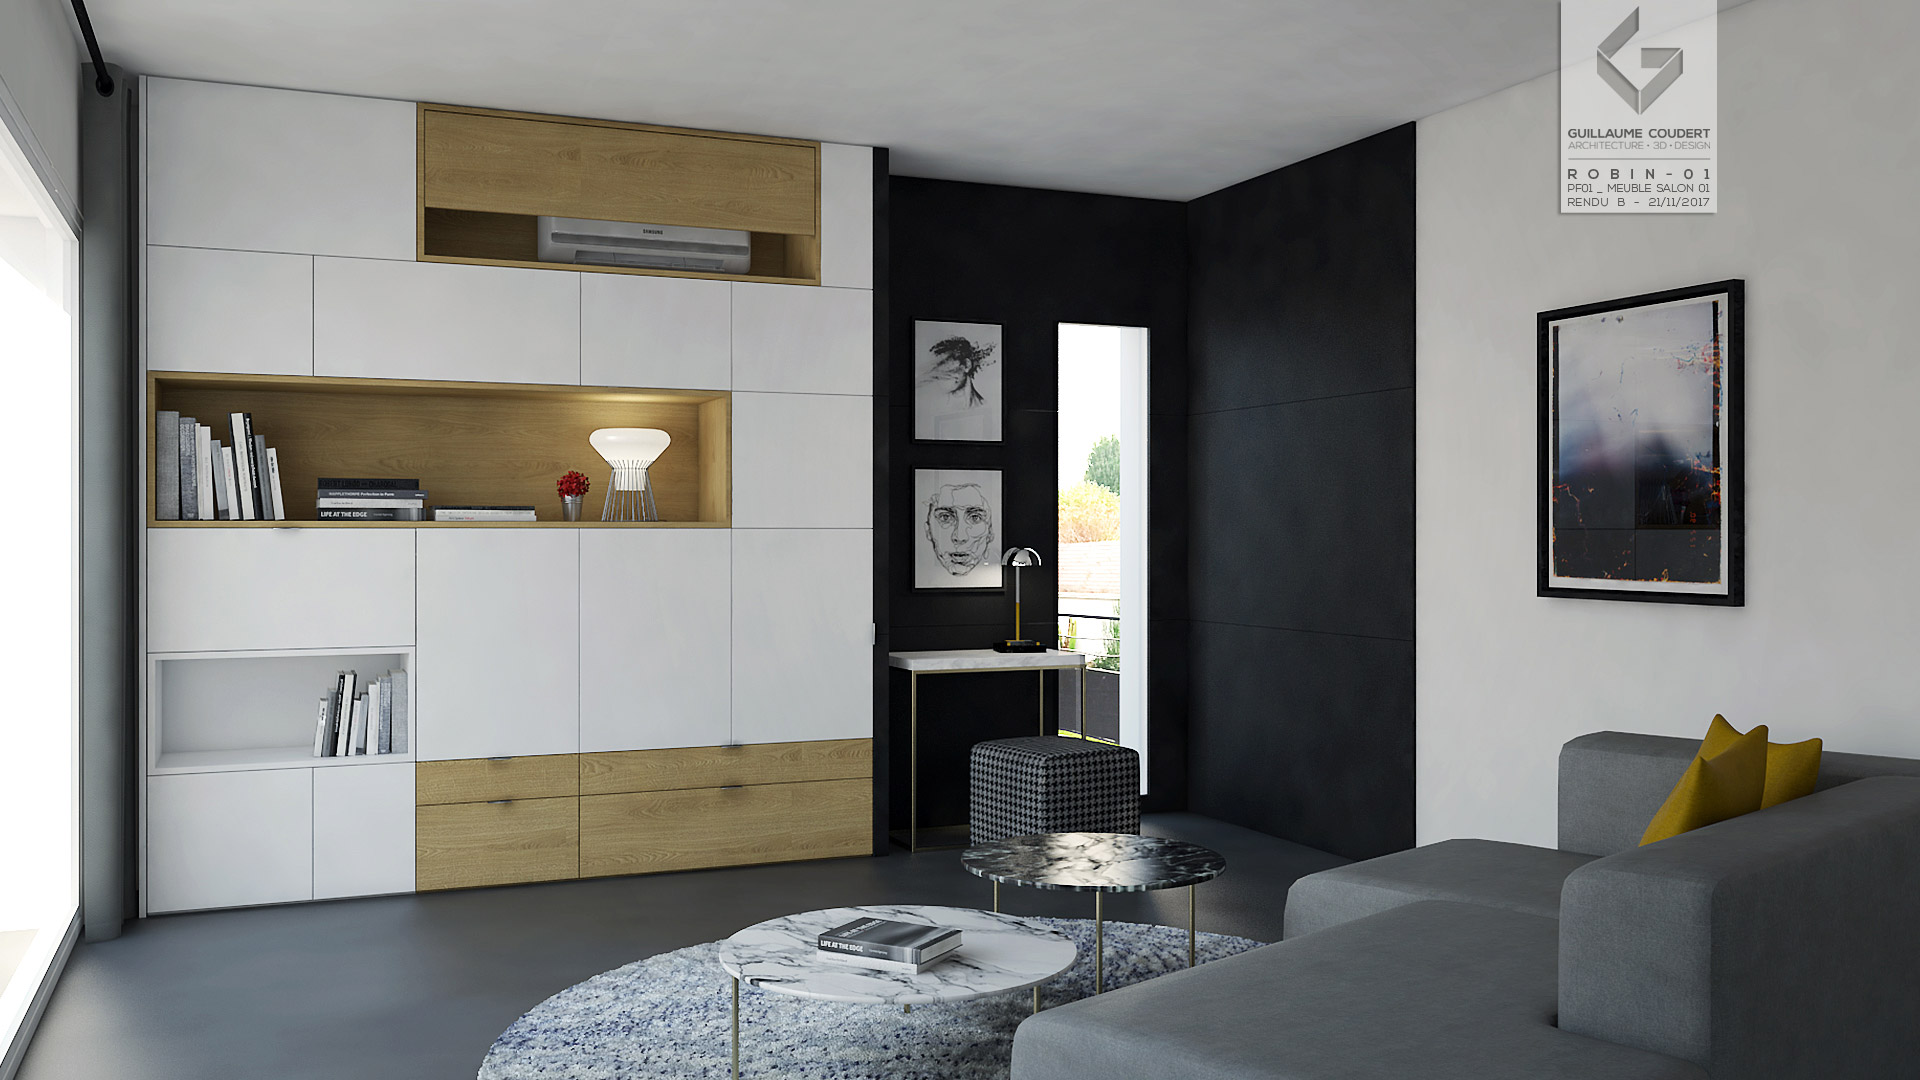 guillaume coudert architecture d 39 int rieur architecture 3d design. Black Bedroom Furniture Sets. Home Design Ideas